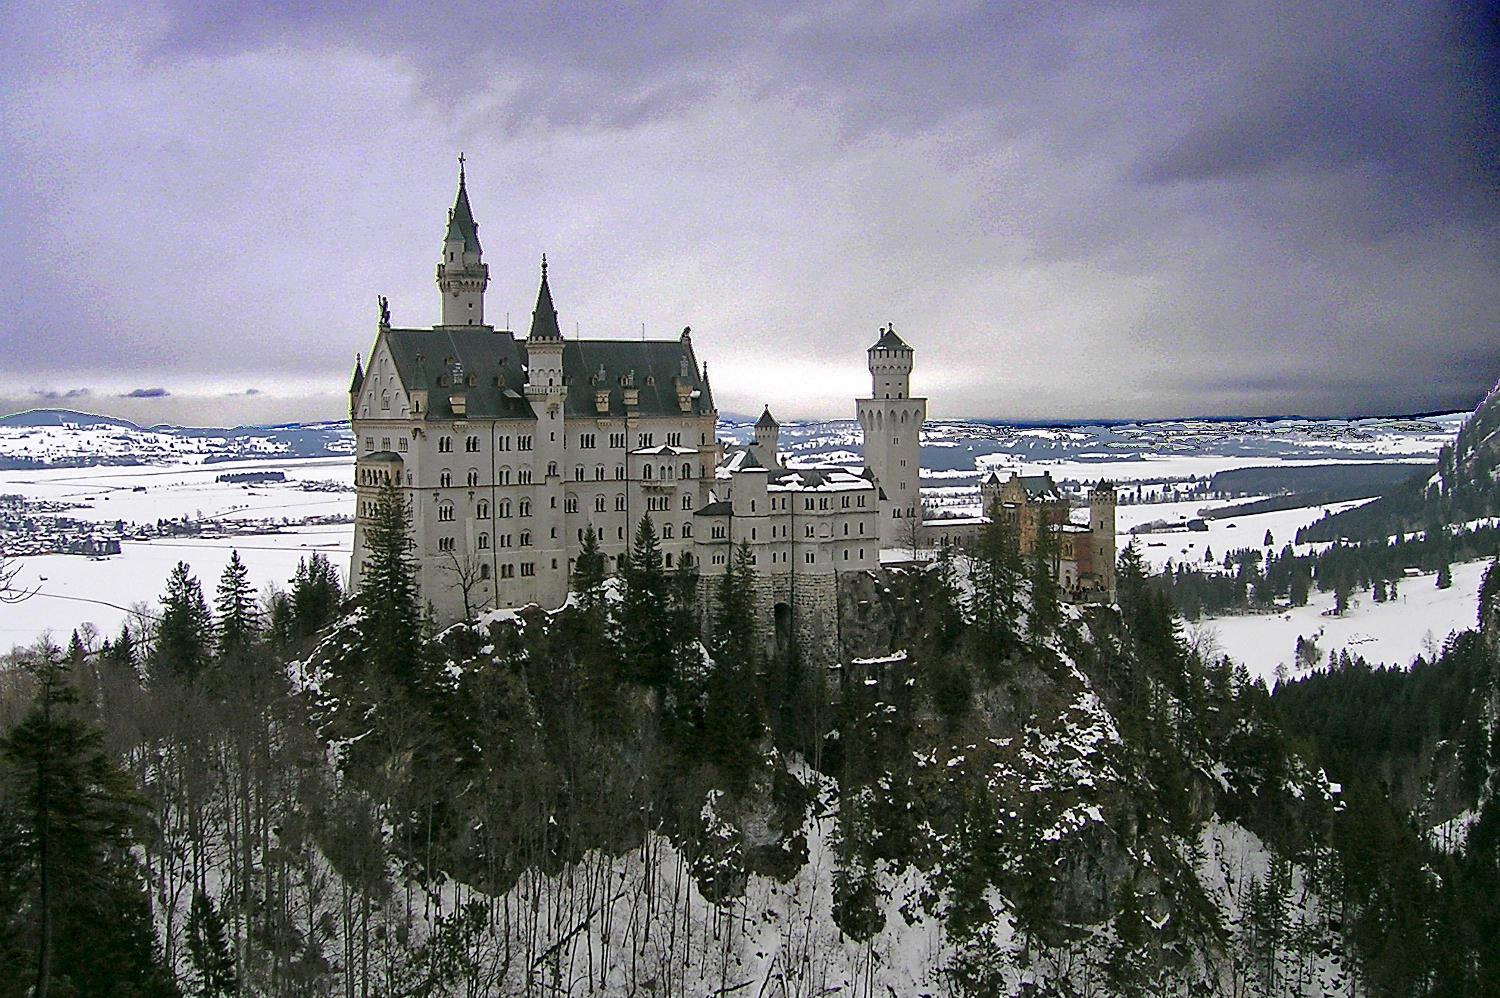 Winter view of Neuschwanstein Castle